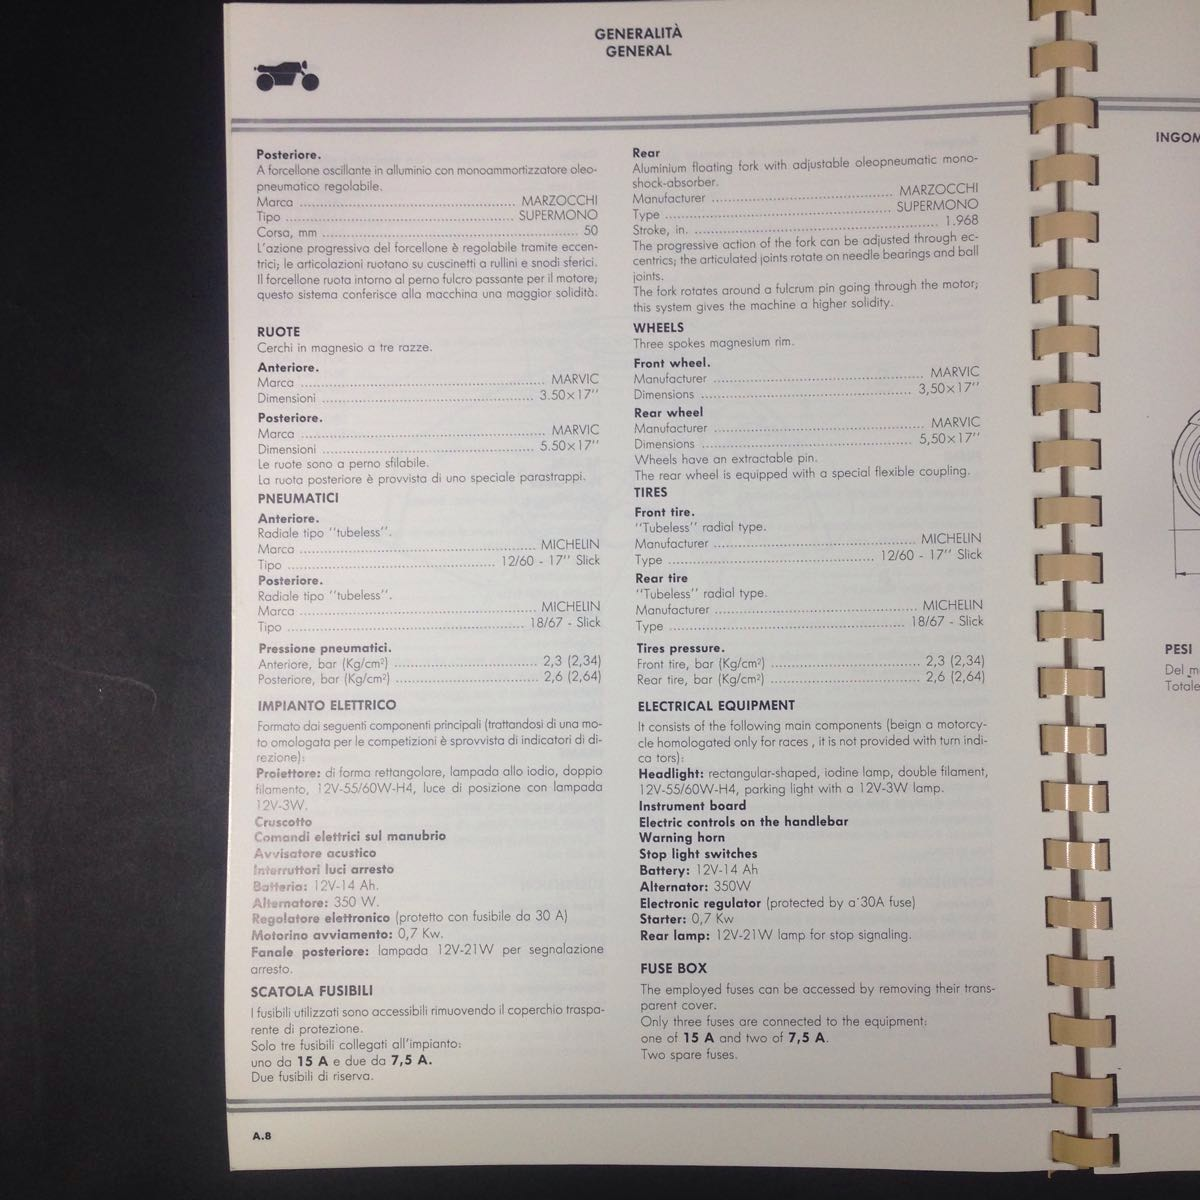 Ducati 851 Official Manual Unused Goods That Time Thing Real Yahoo Fuse Box